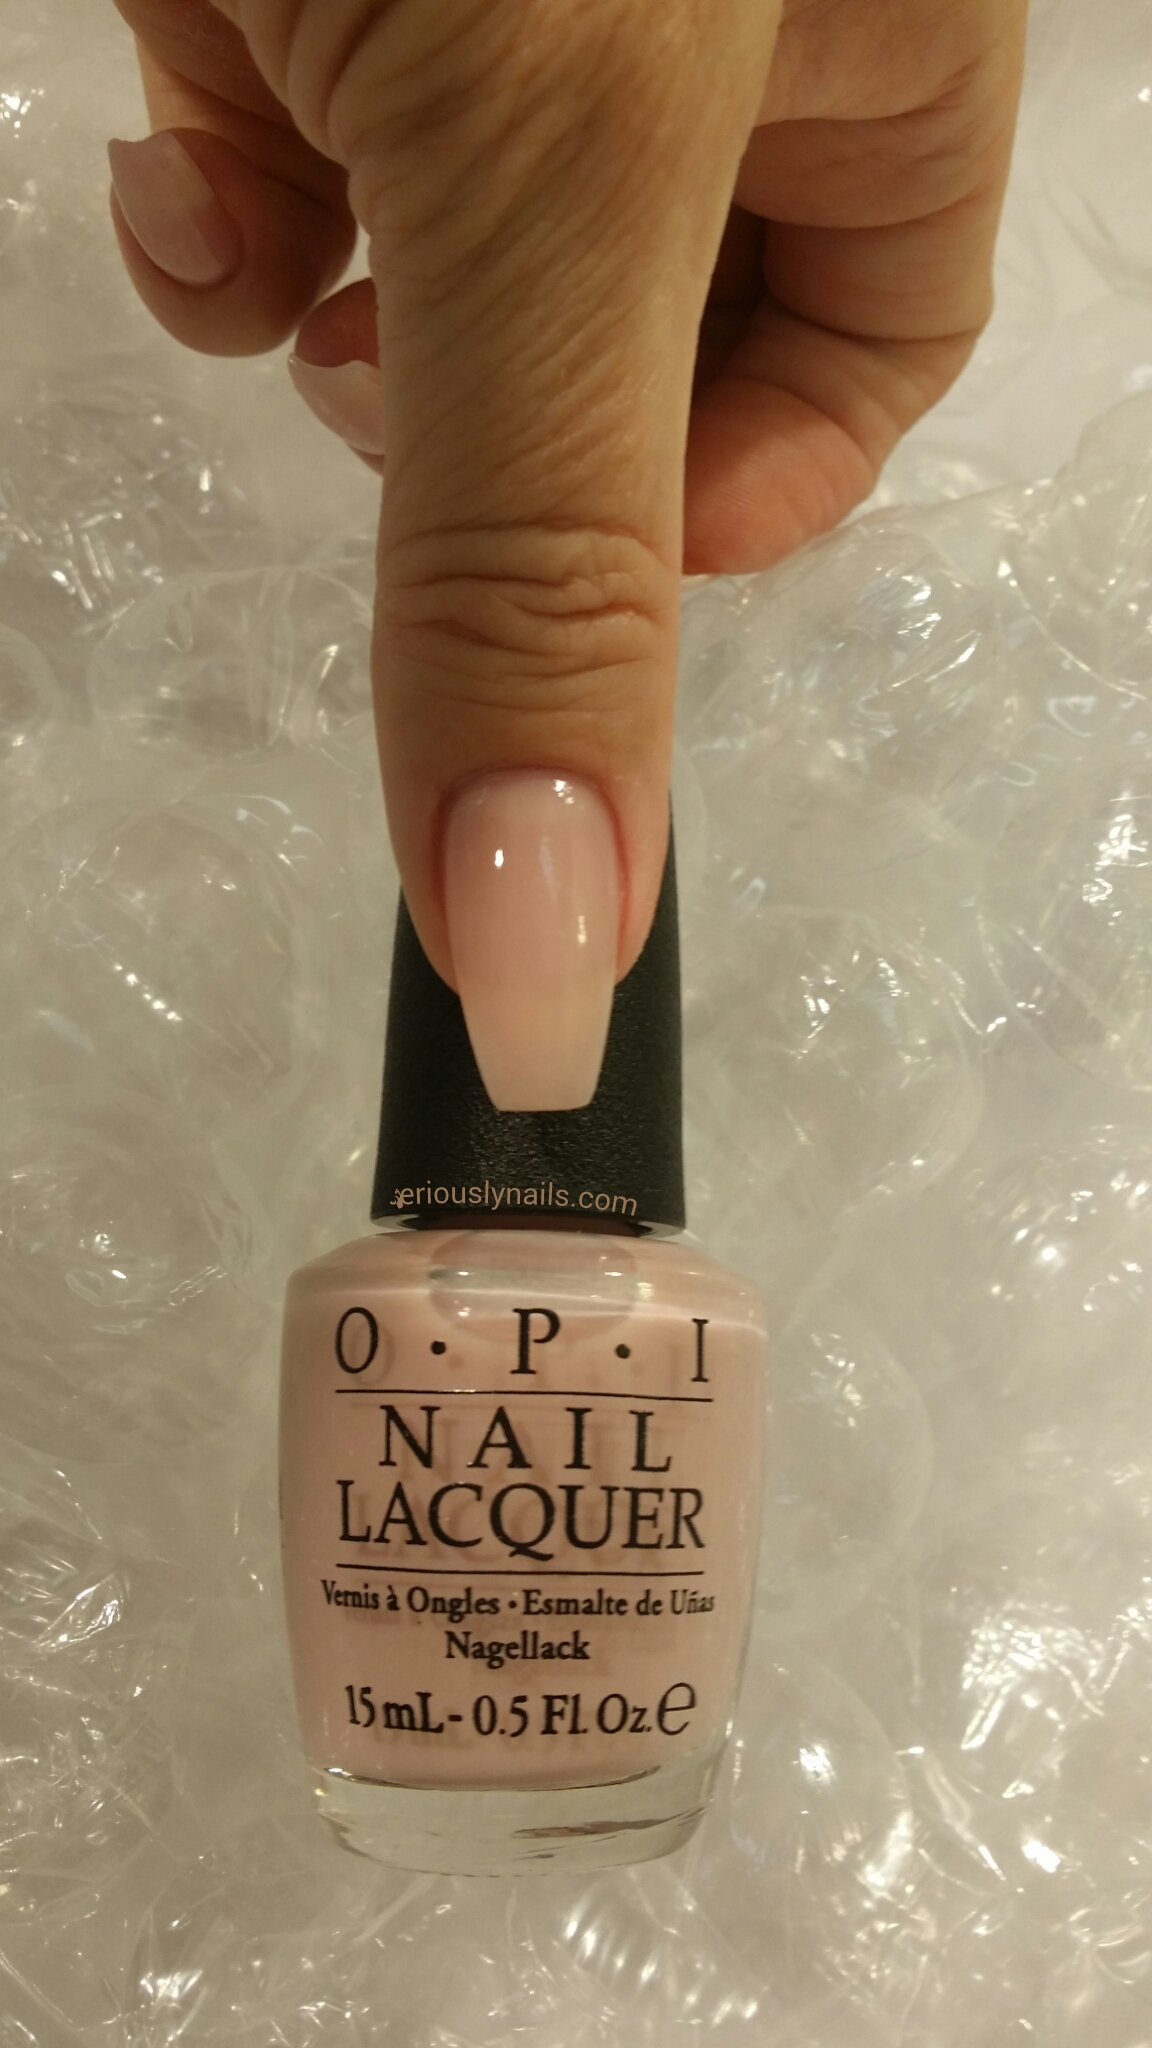 OPI | Seriously Nails | Page 8